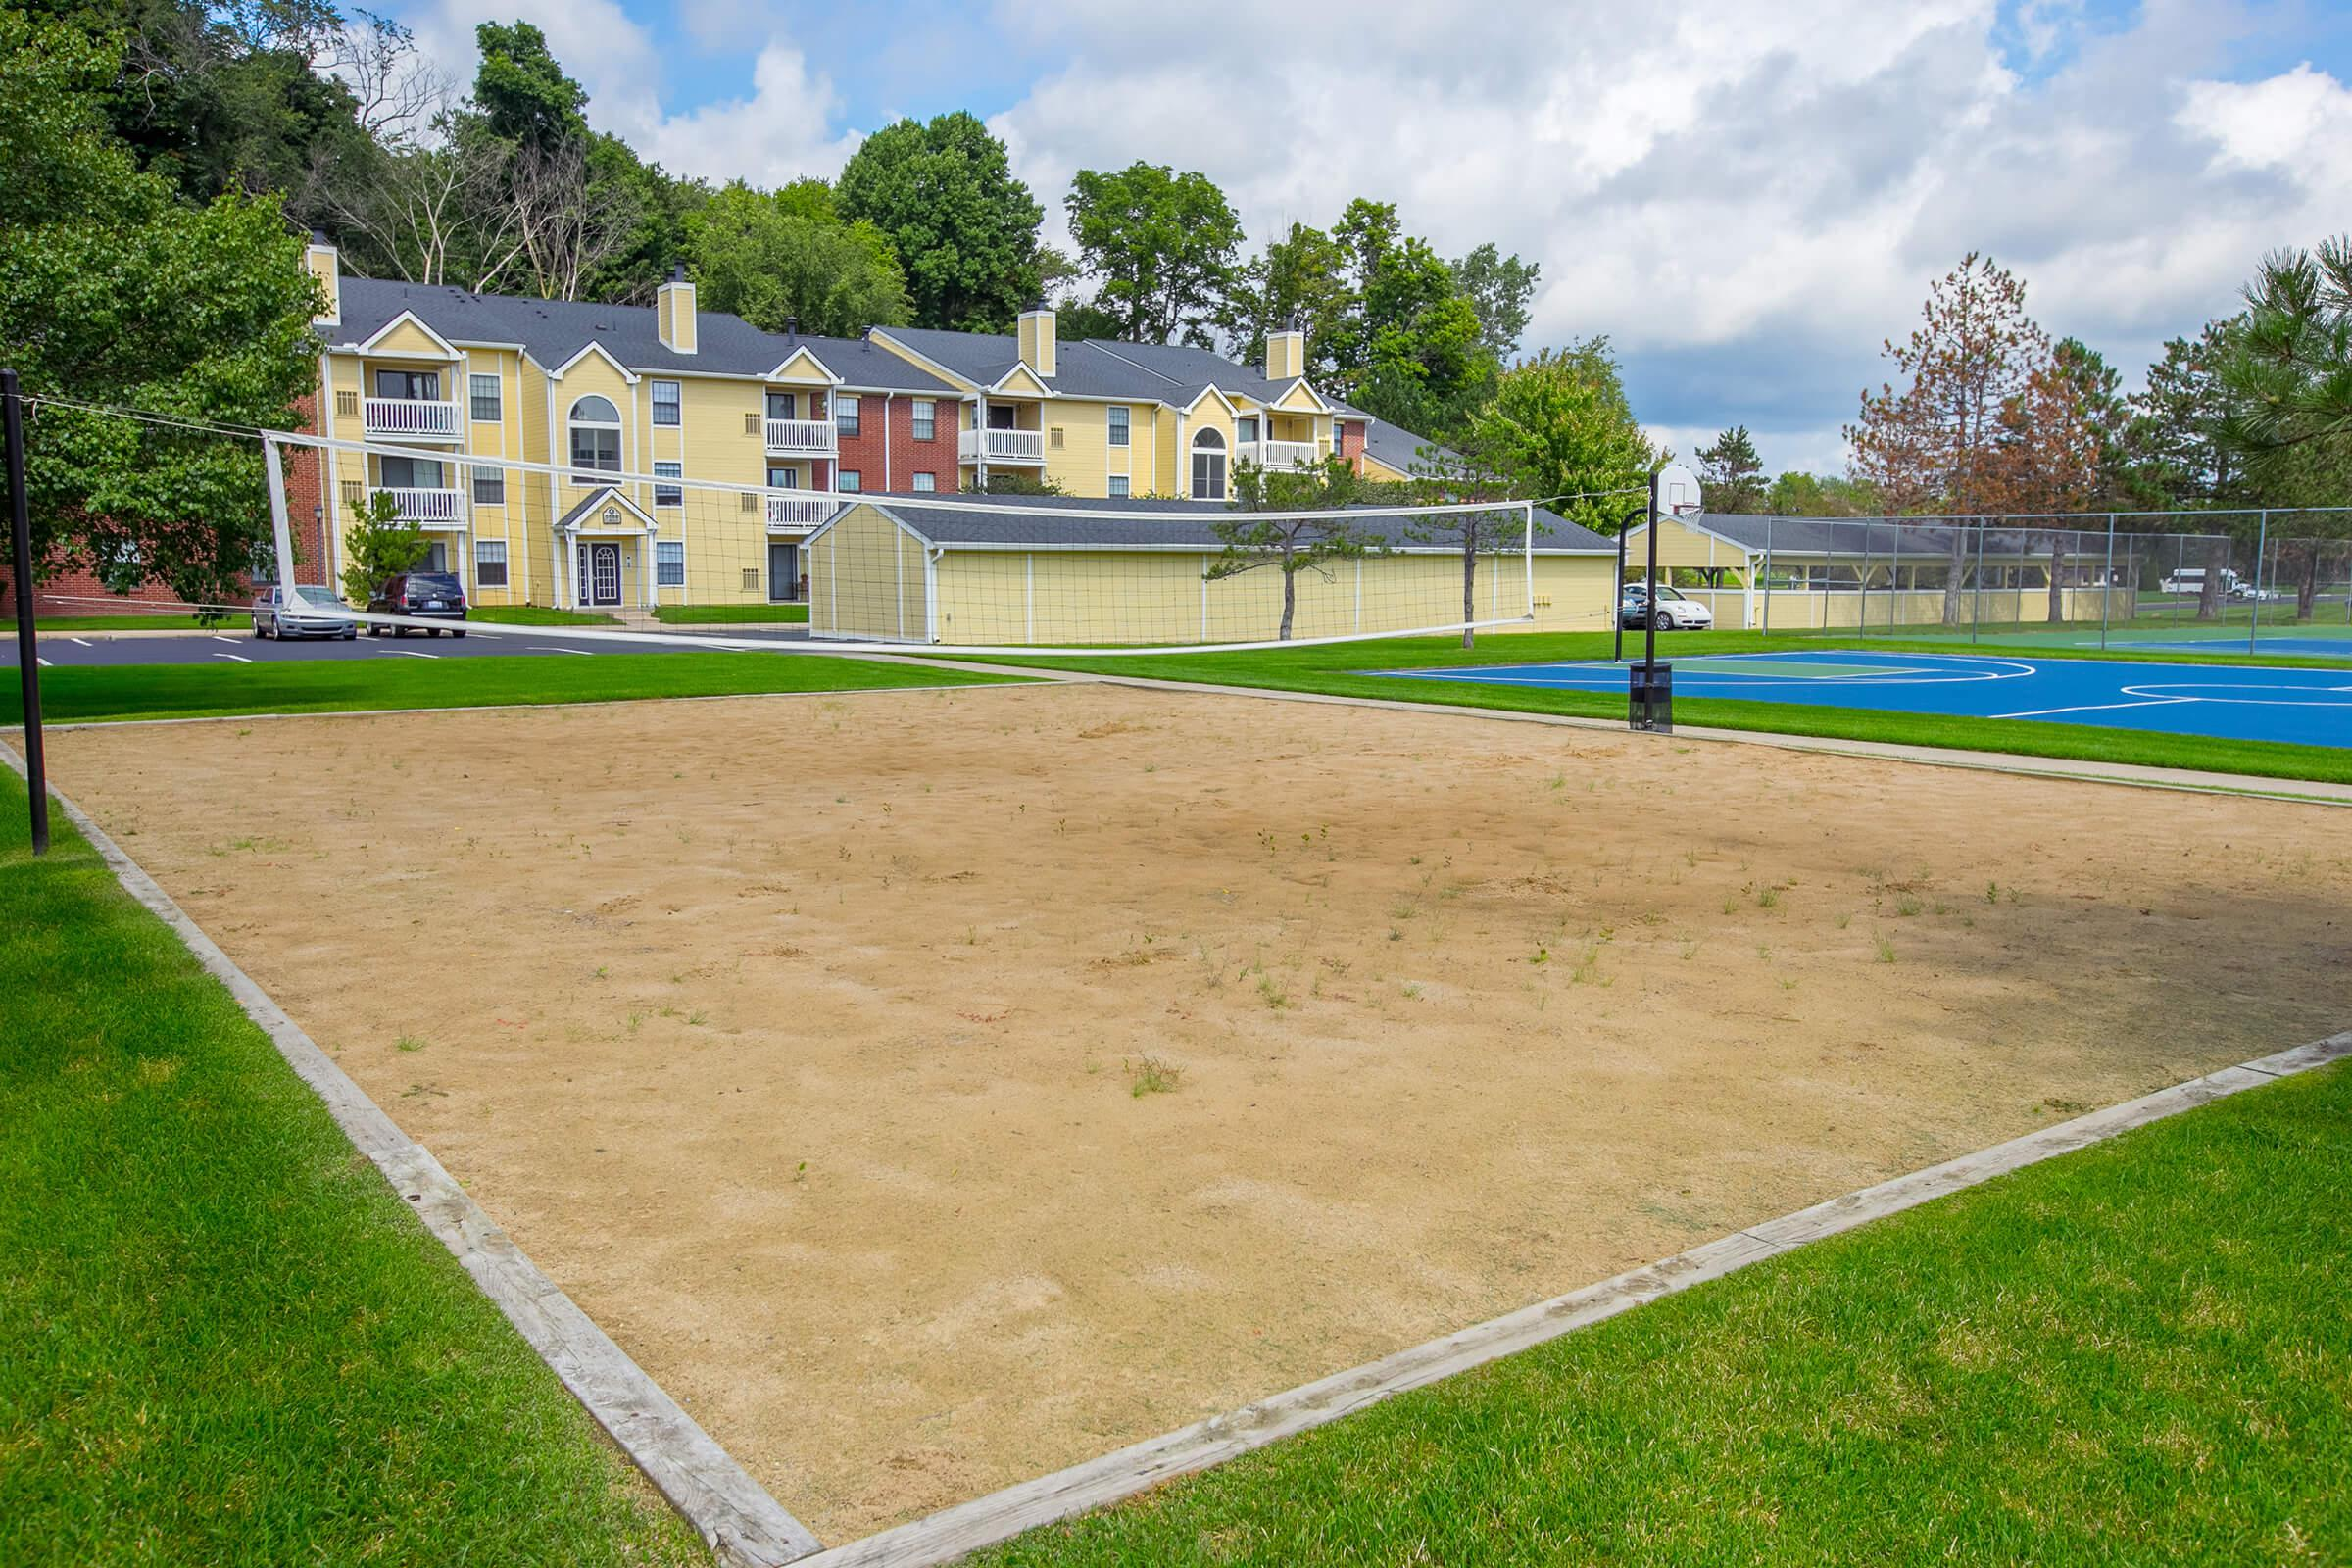 Summer Ridge Kalamazoo MI - Volleyball Court 1.jpg